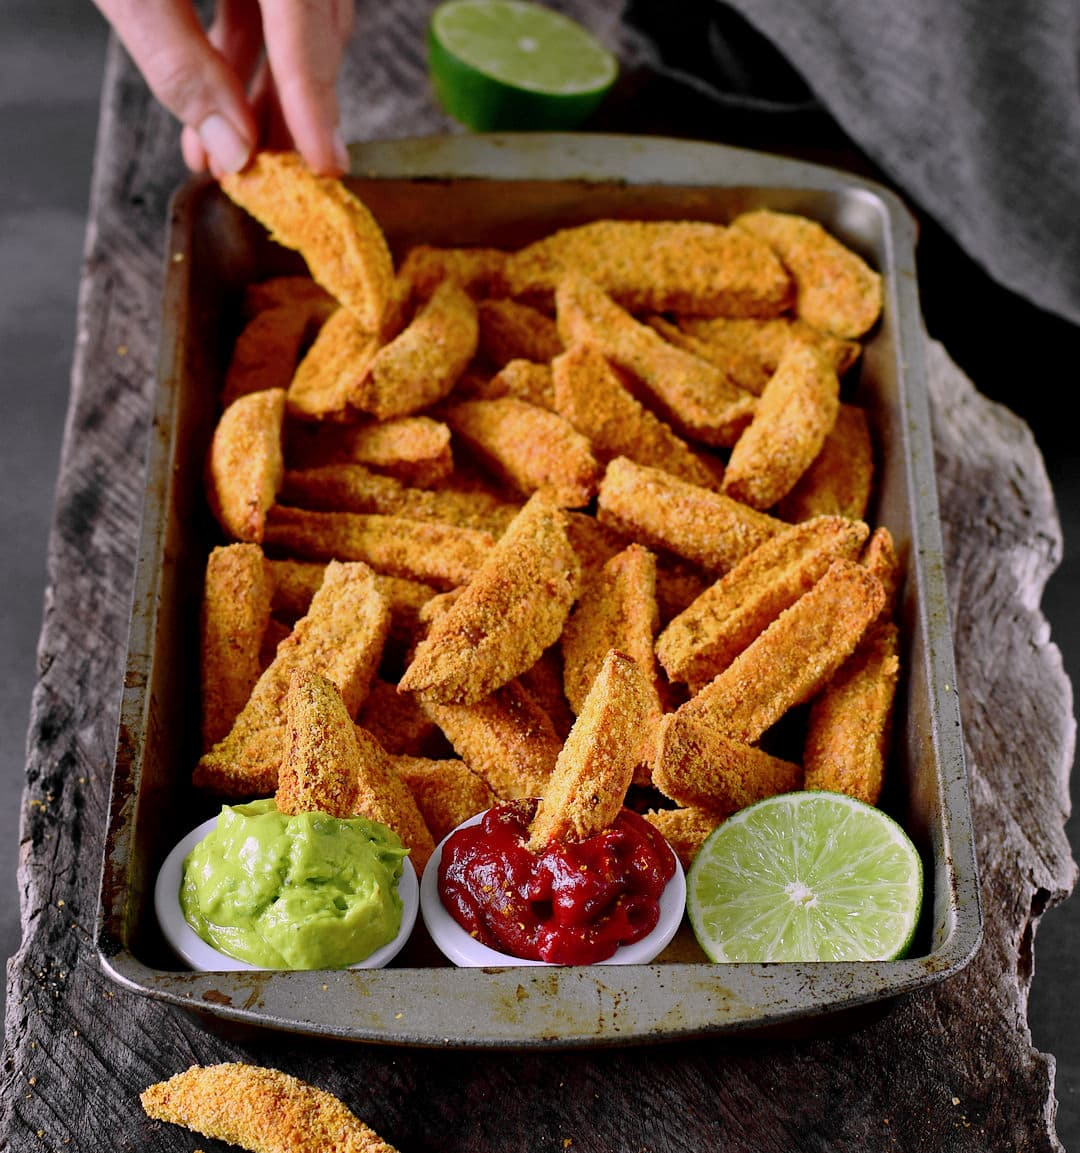 Eating oven-baked vegan parmesan potato wedges with guacamole dip and ketchup